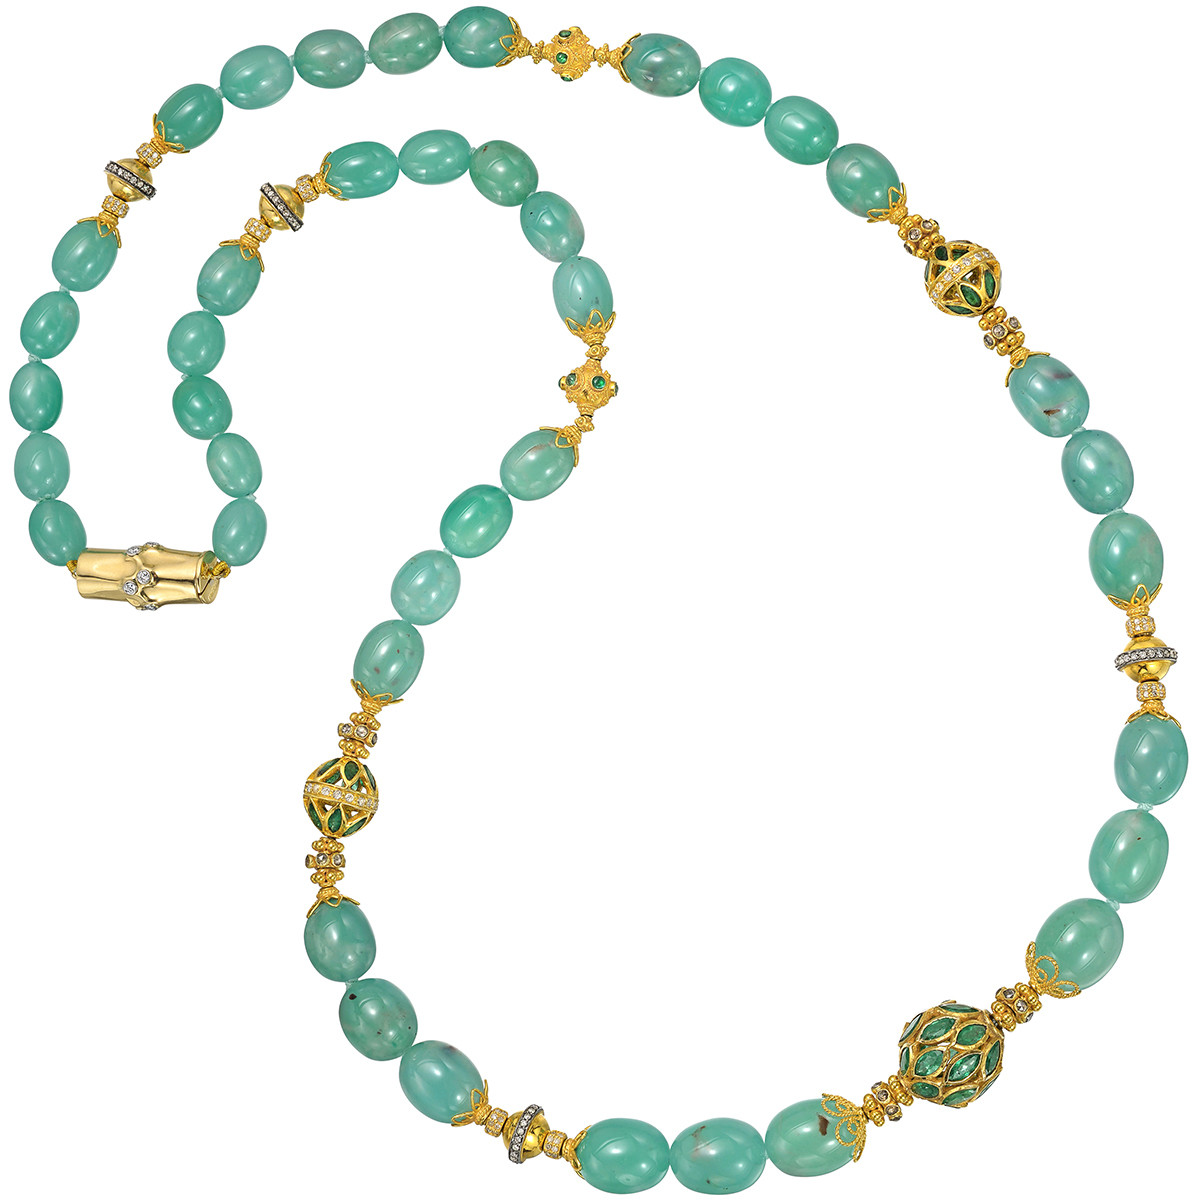 Seafoam Green Chalcedony Bead Long Necklace